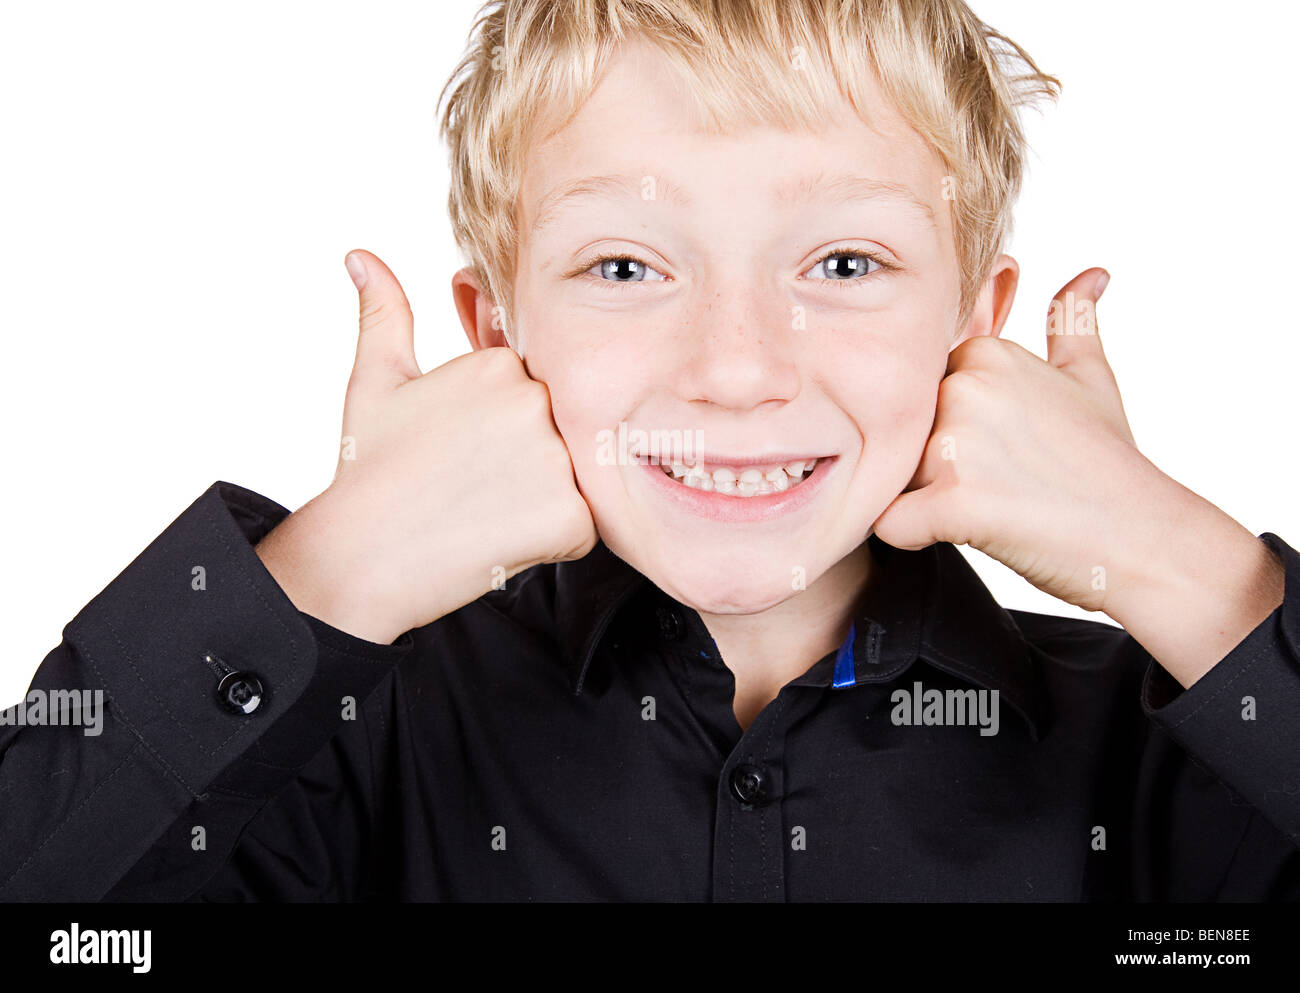 Isolated Shot of a Cute Blonde Haired Boy Smiling with Thumbs Up - Stock Image